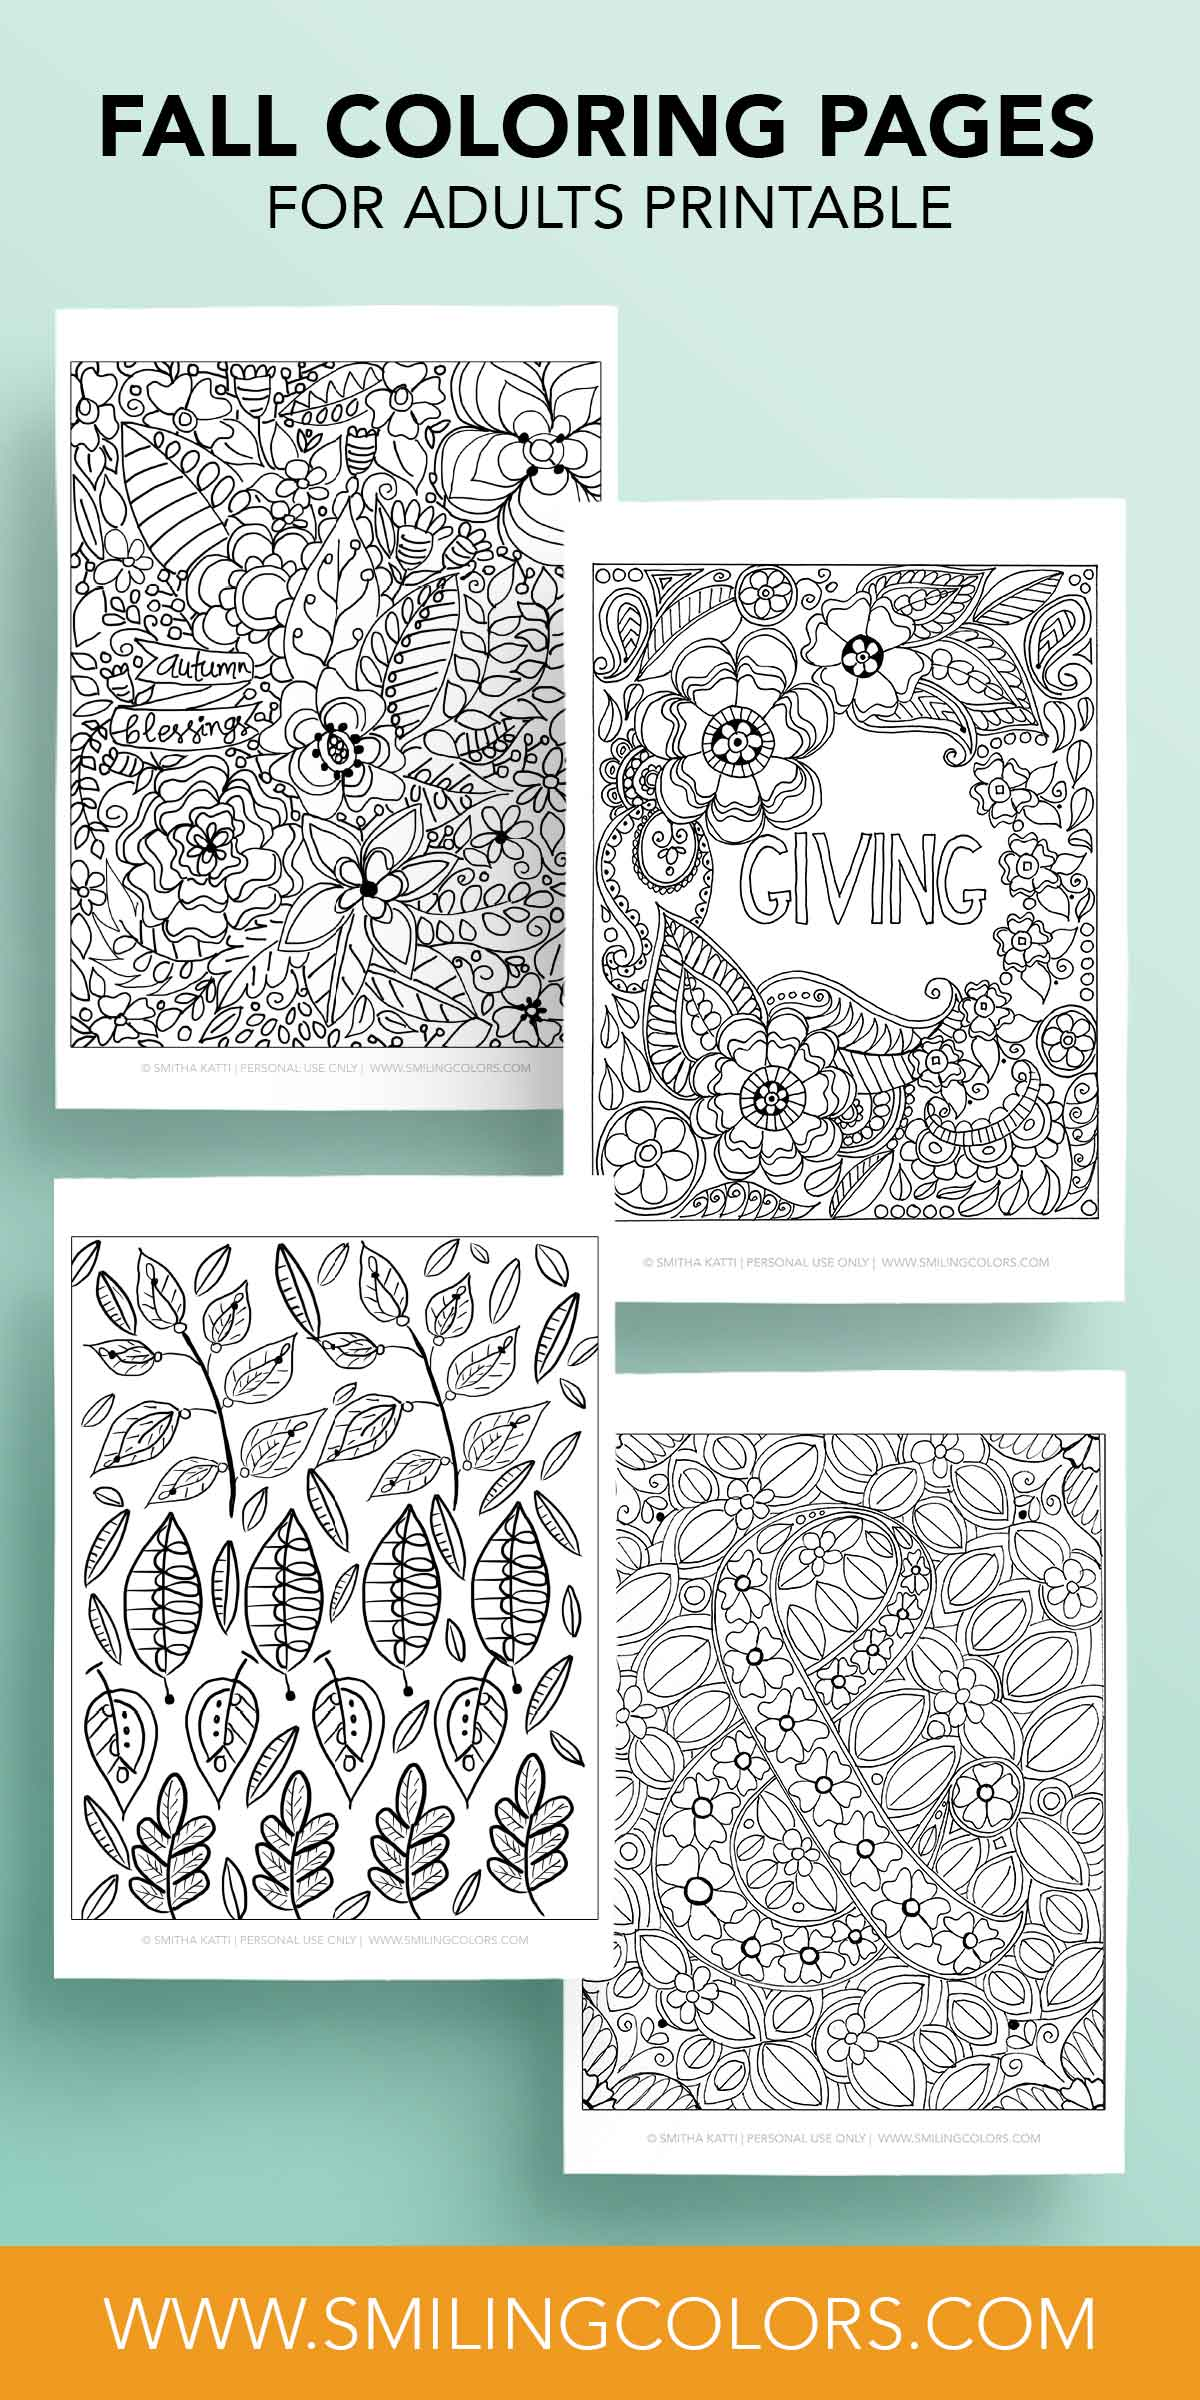 Fall Coloring Pages For Adults Printable Smitha Katti